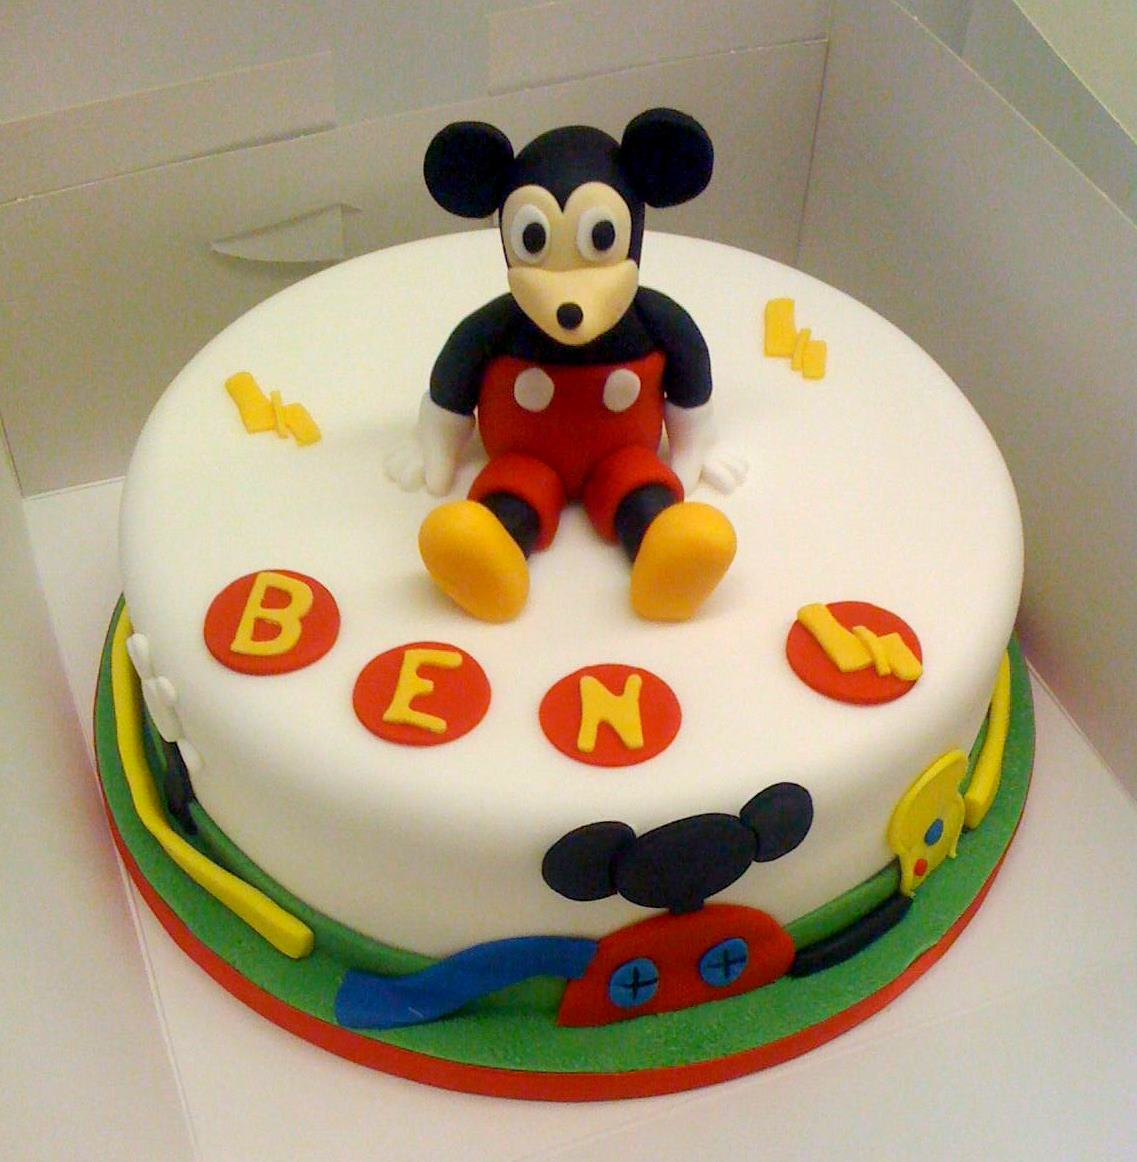 Cake Images Of Mickey Mouse : Some of this weeks novelty cakes   Jenny s Cake Blog ...